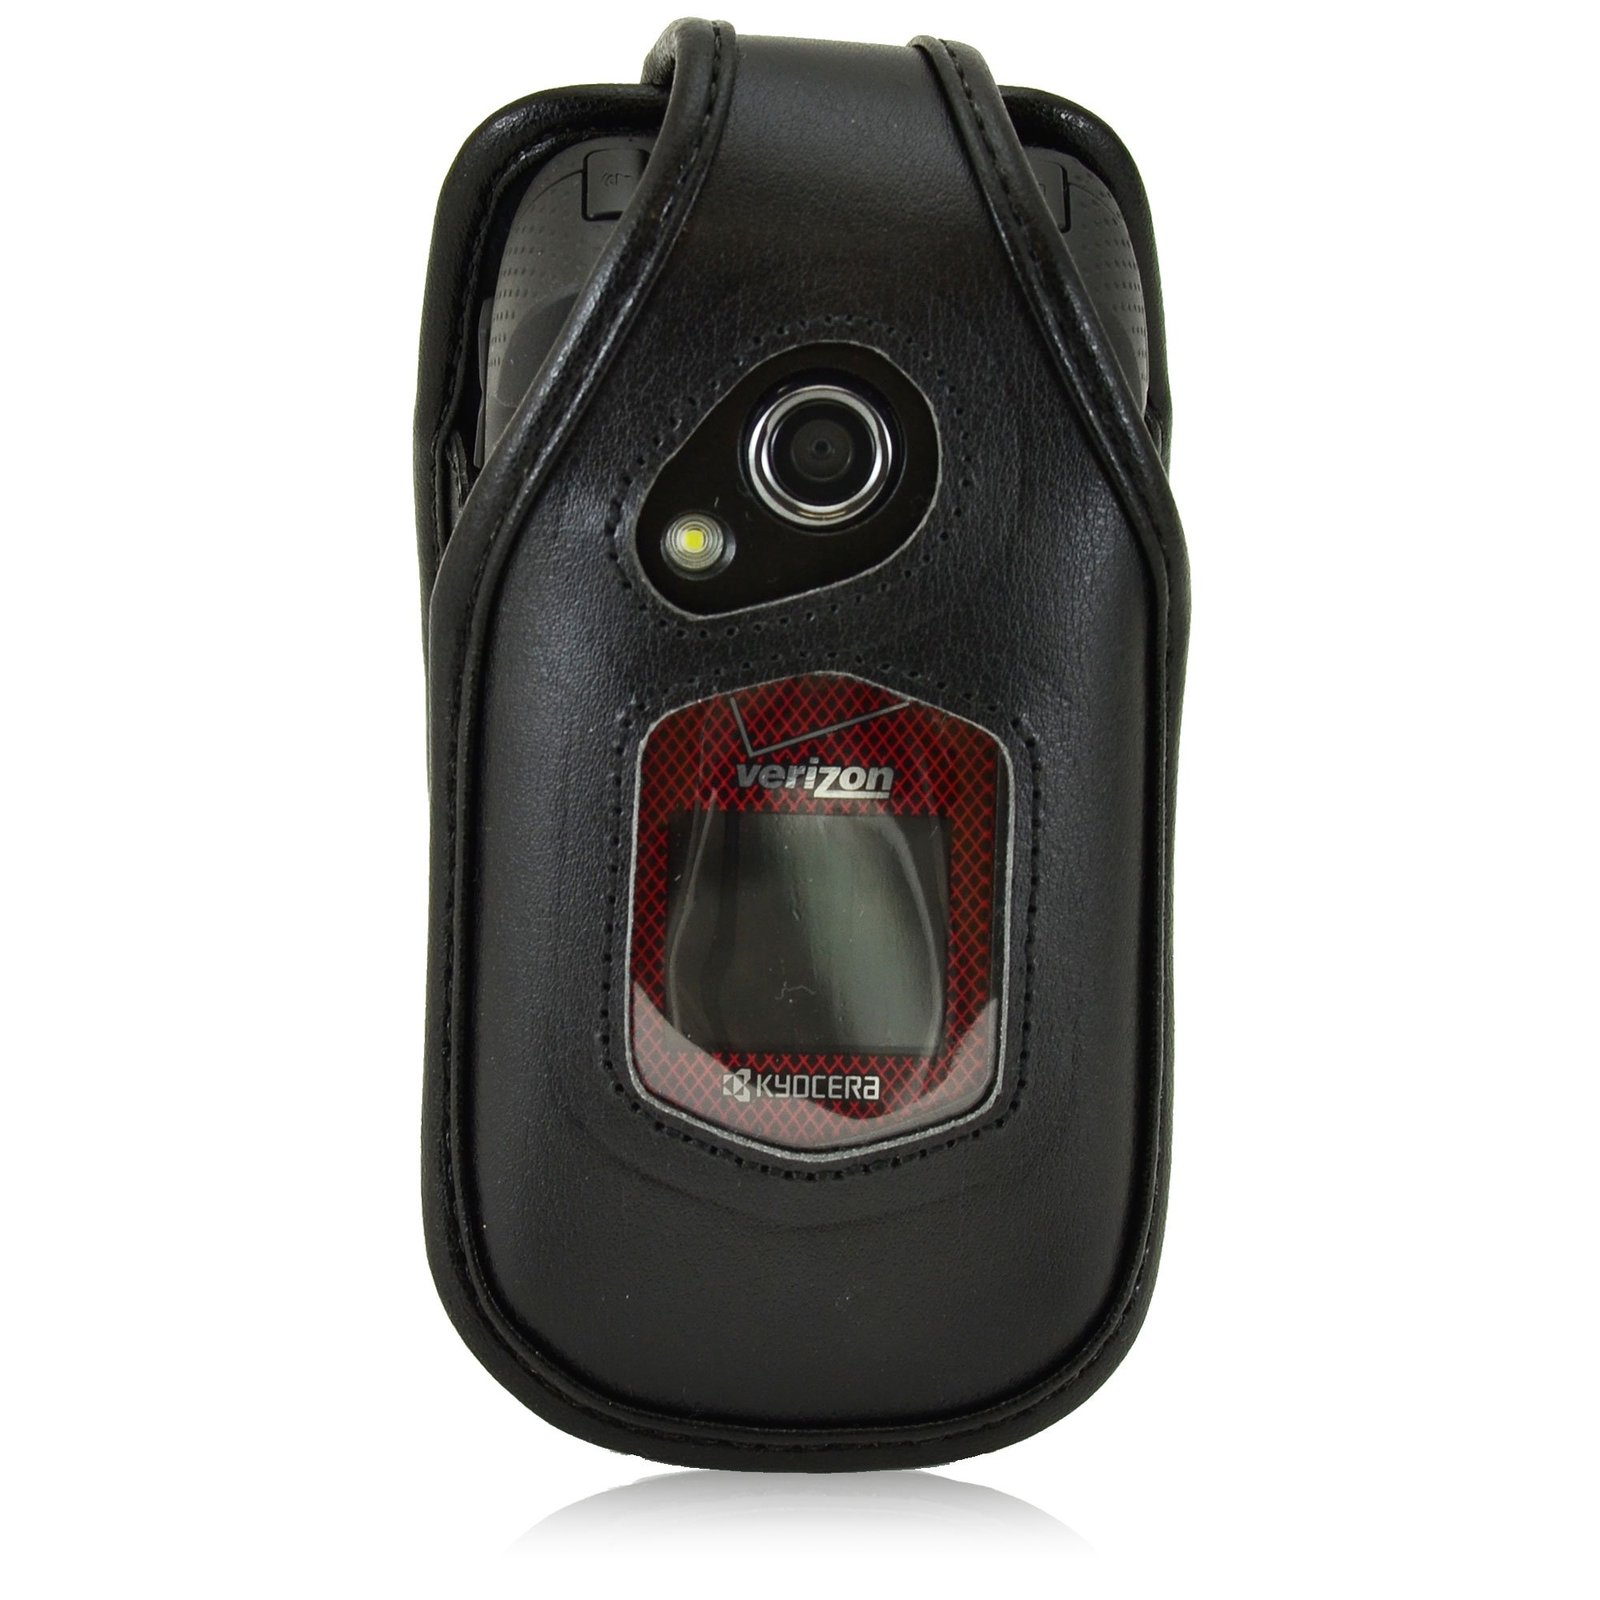 Turtleback Fitted Case for Kyocera DuraXV Flip Phone Black Leather Rotating Remo image 4